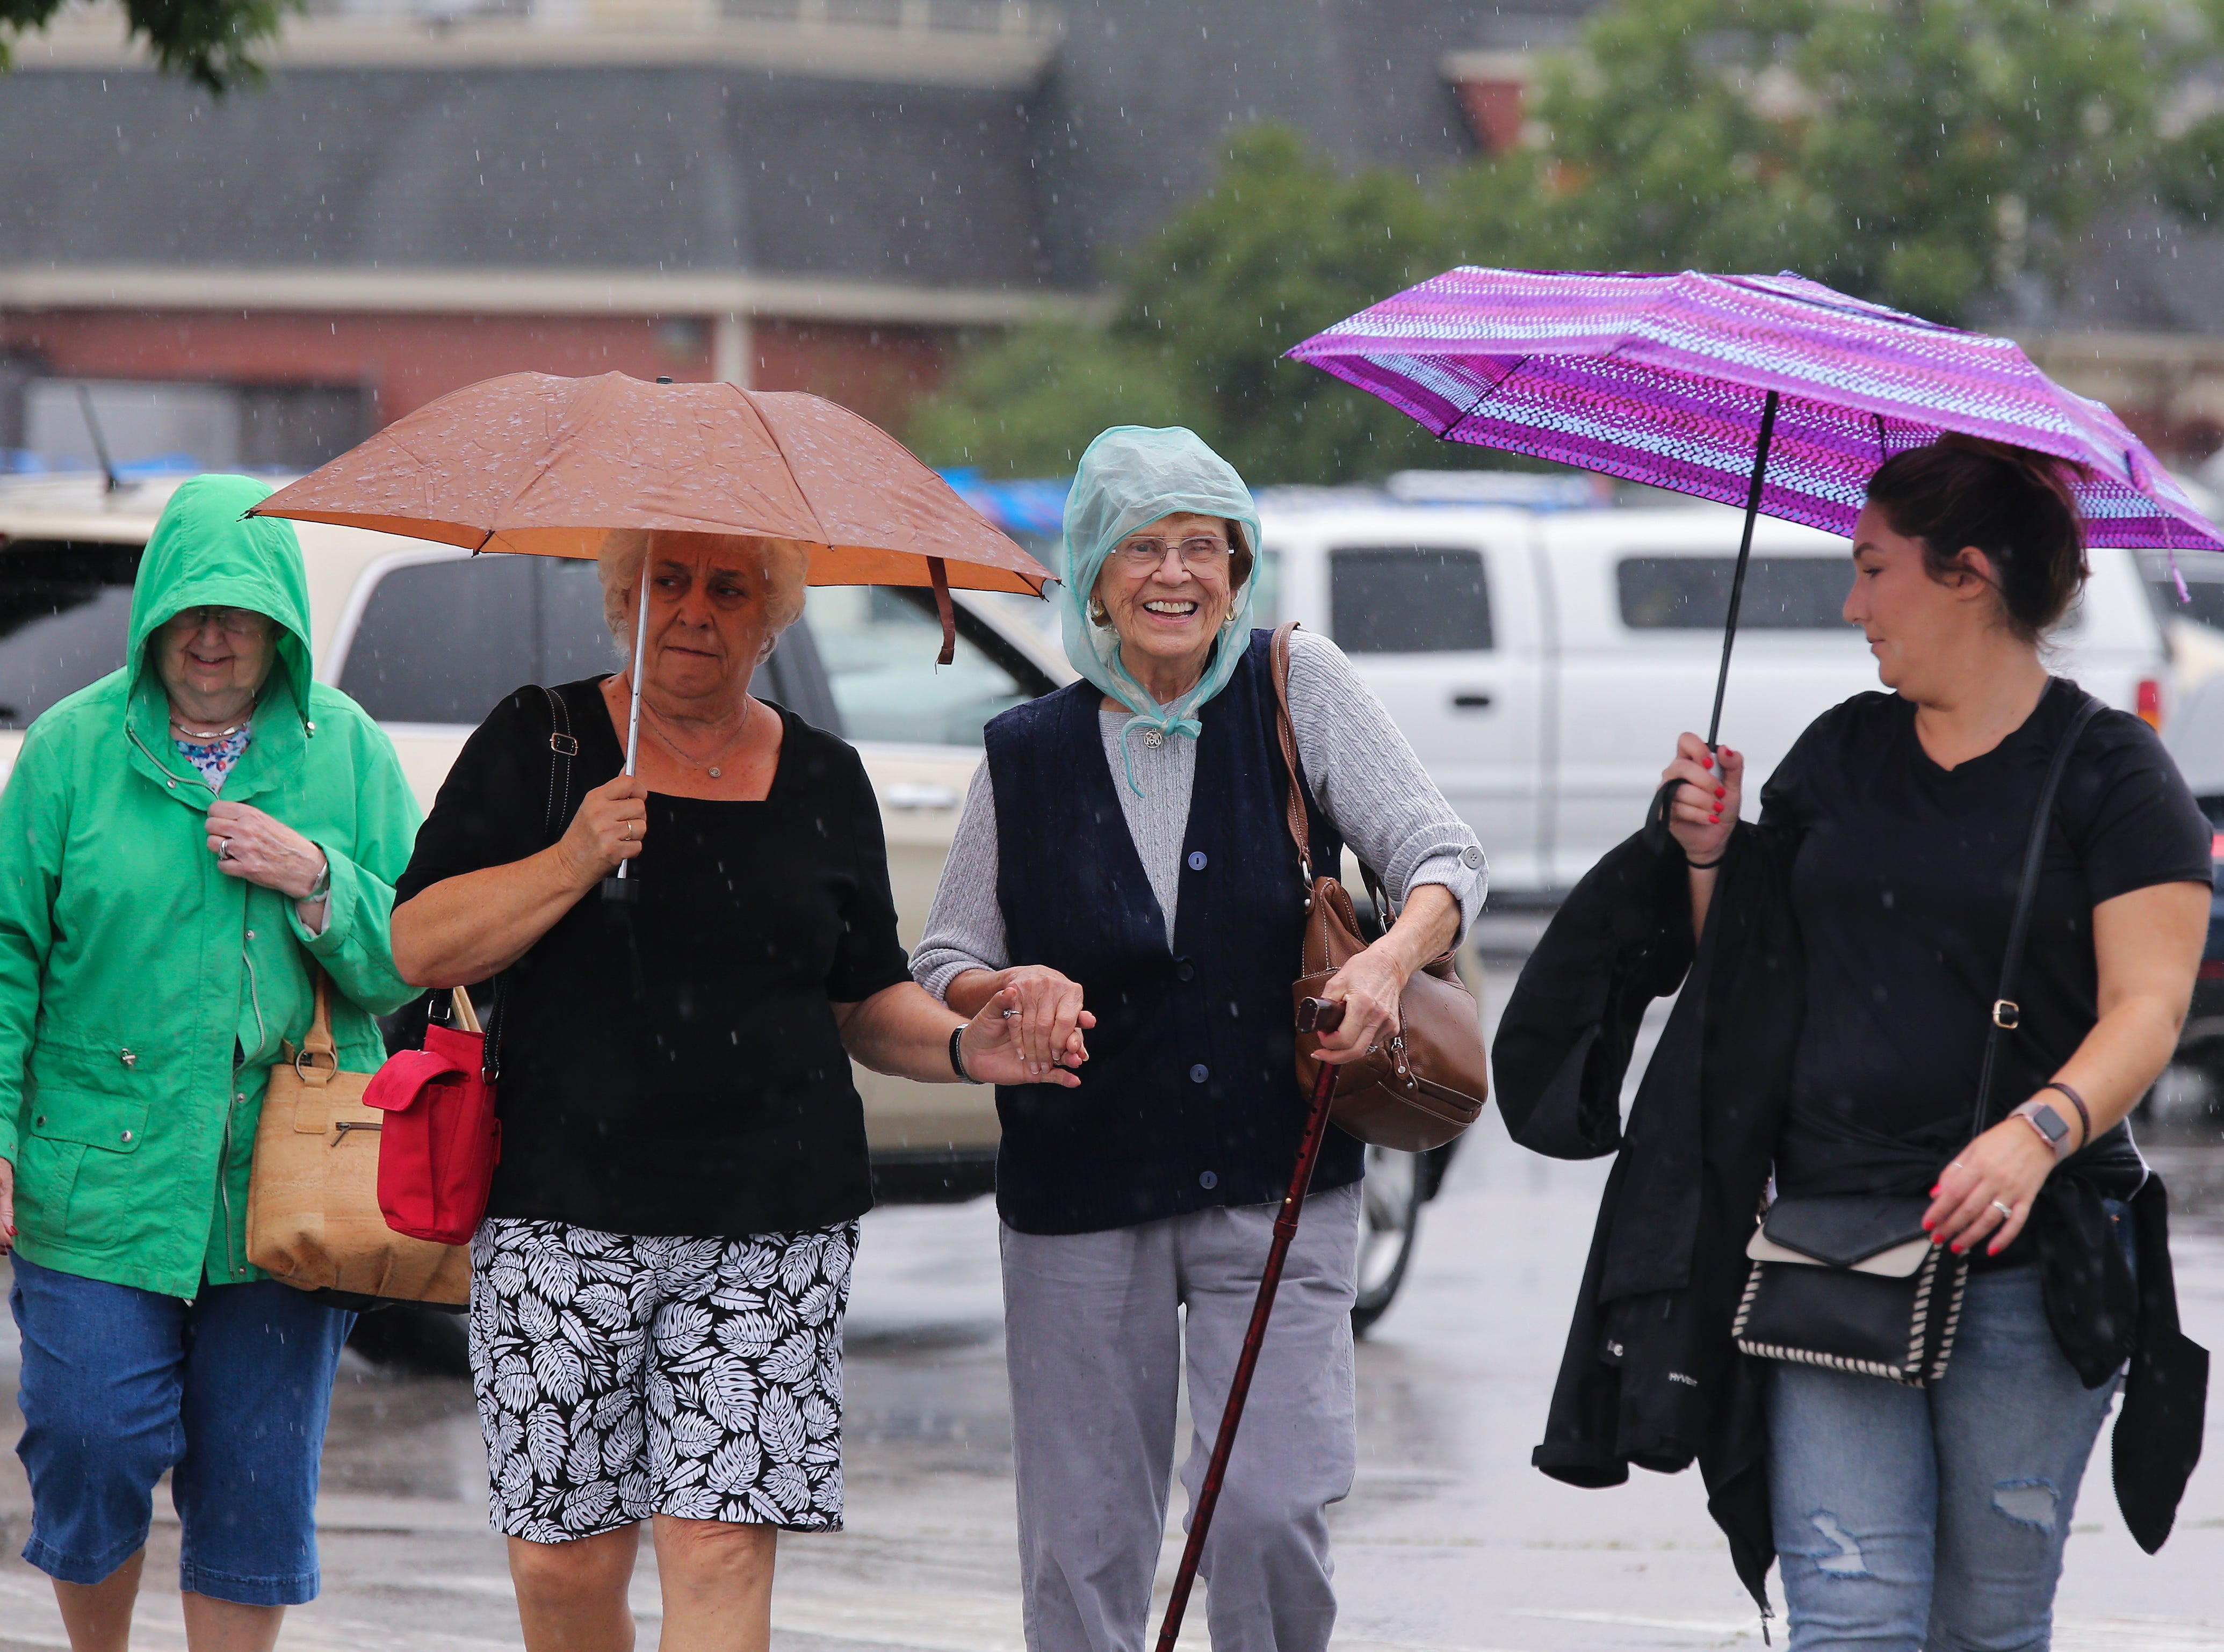 Stella Lindaur, center, who is 99-years-old, got some assistance walking in the rain from her niece Arlene Rigsby, left, on the first day of the Kentucky State Fair.  Lindaur's great-great niece Danielle Stivers was at right.Aug. 16, 2018